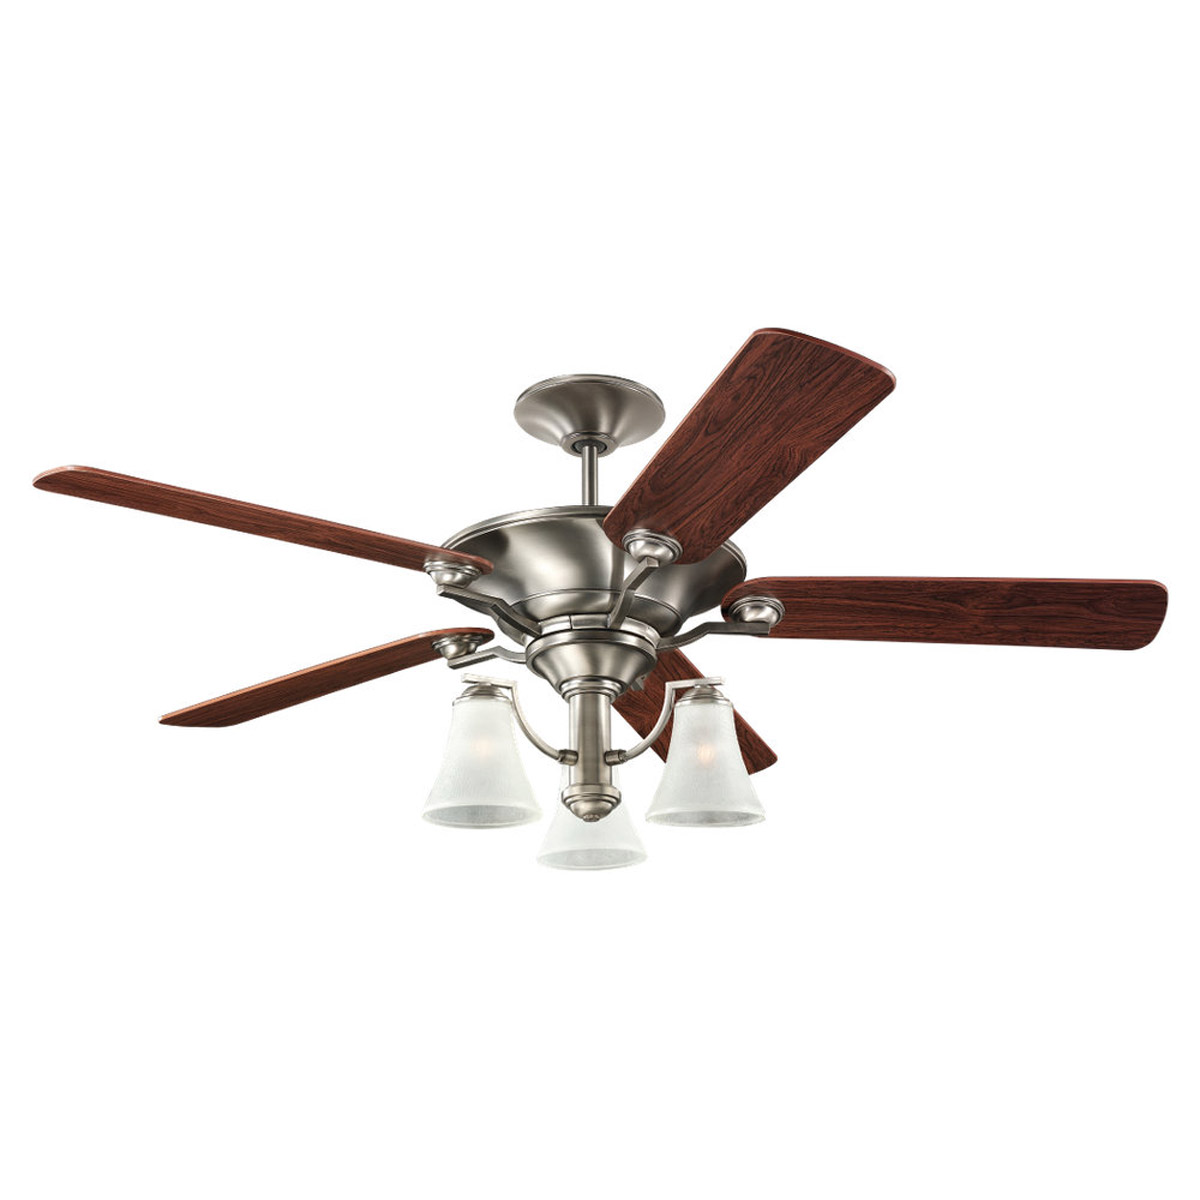 Sea Gull Lighting 3 Light 52in Somerton Ceiling Fan in Antique Brushed Nickel 15170B-965